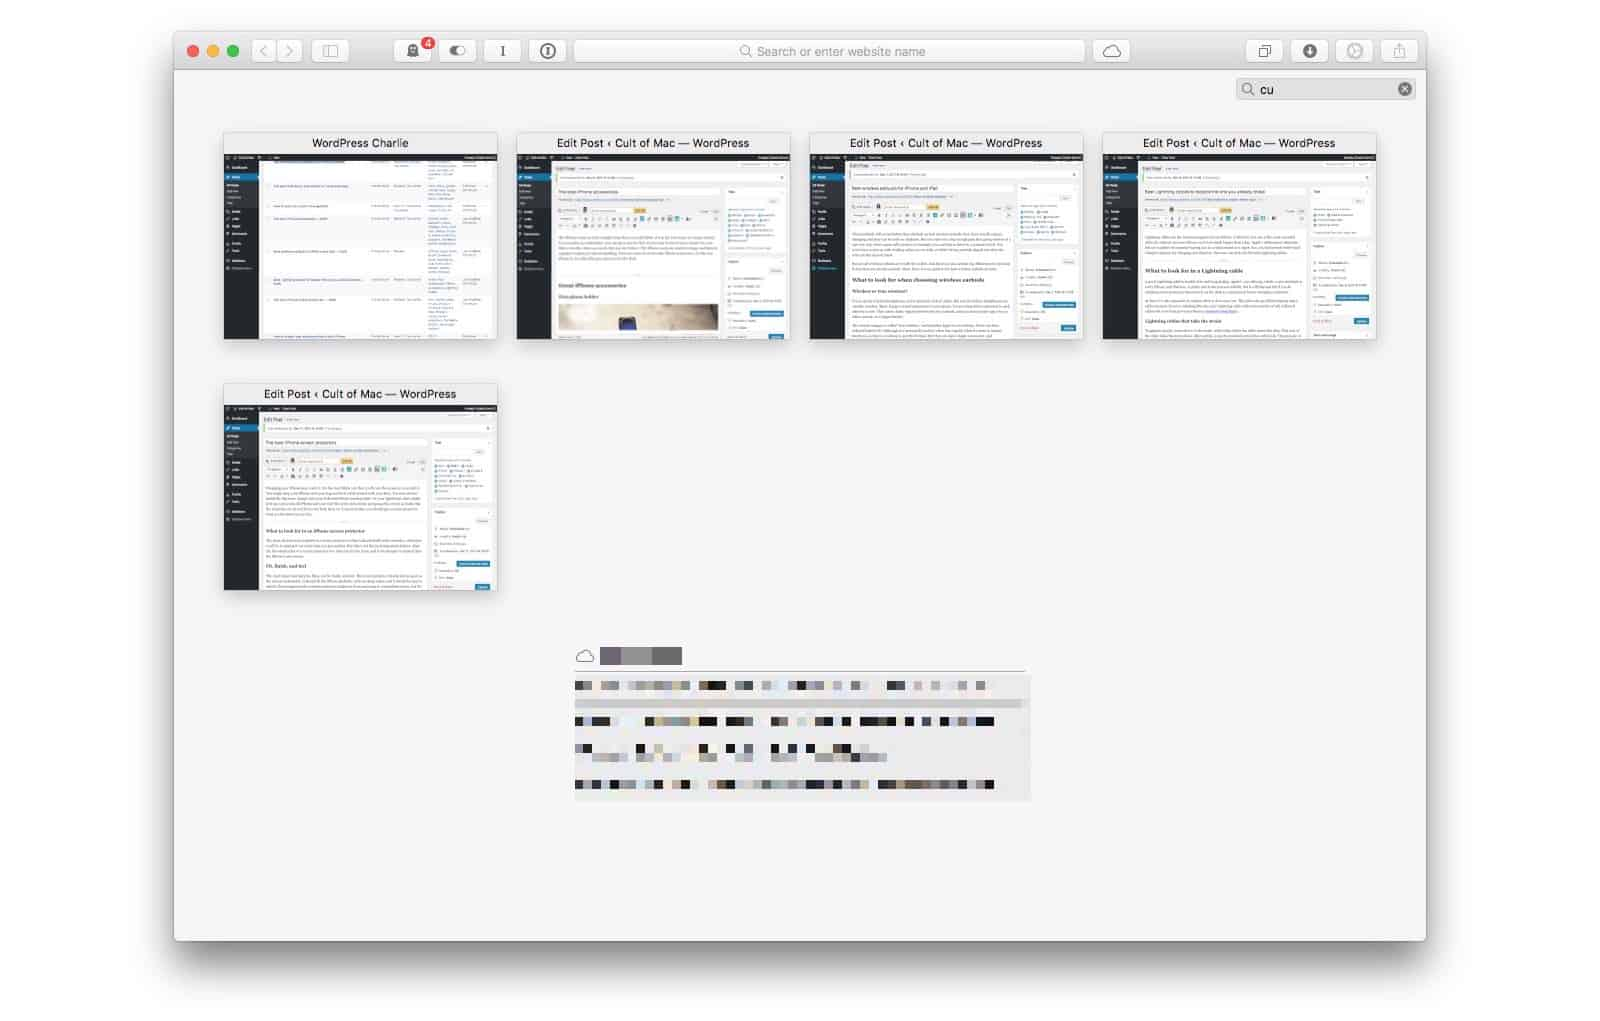 Typing filters all your open tabs, and shows only those which match.